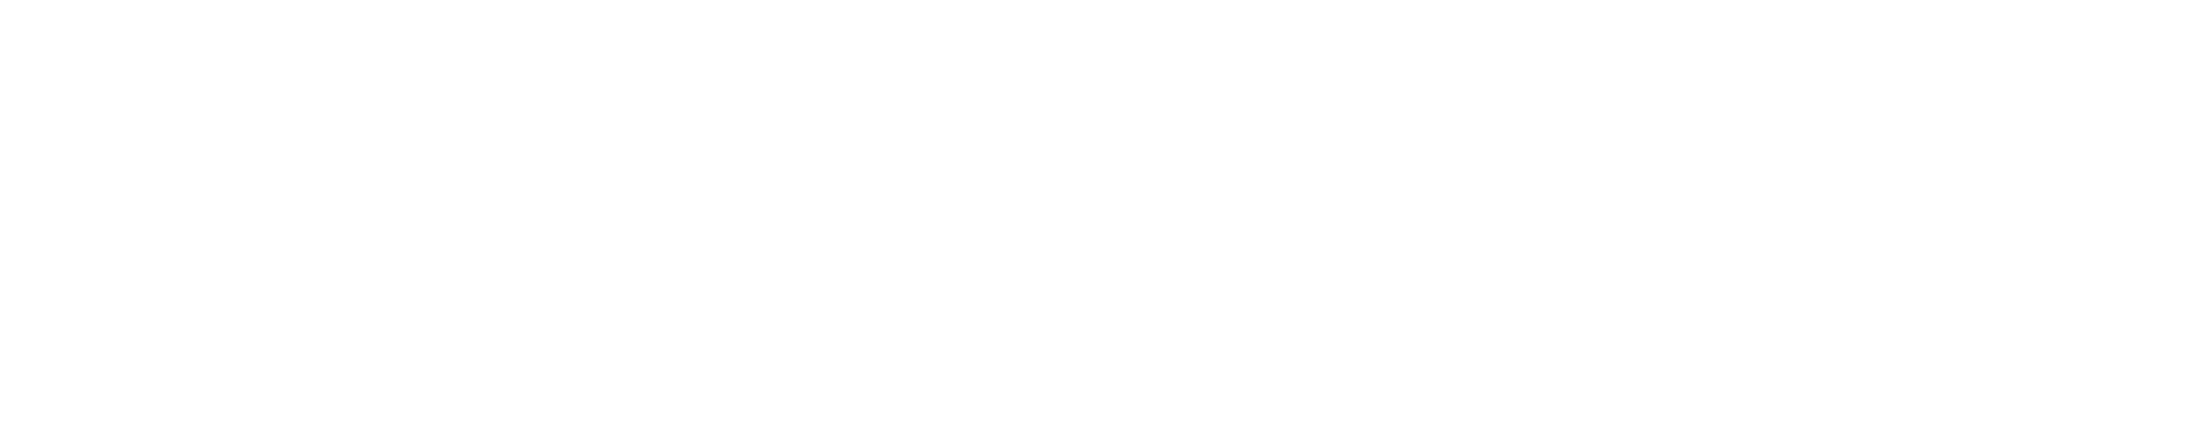 The Story of Fog City Cloudy Cider